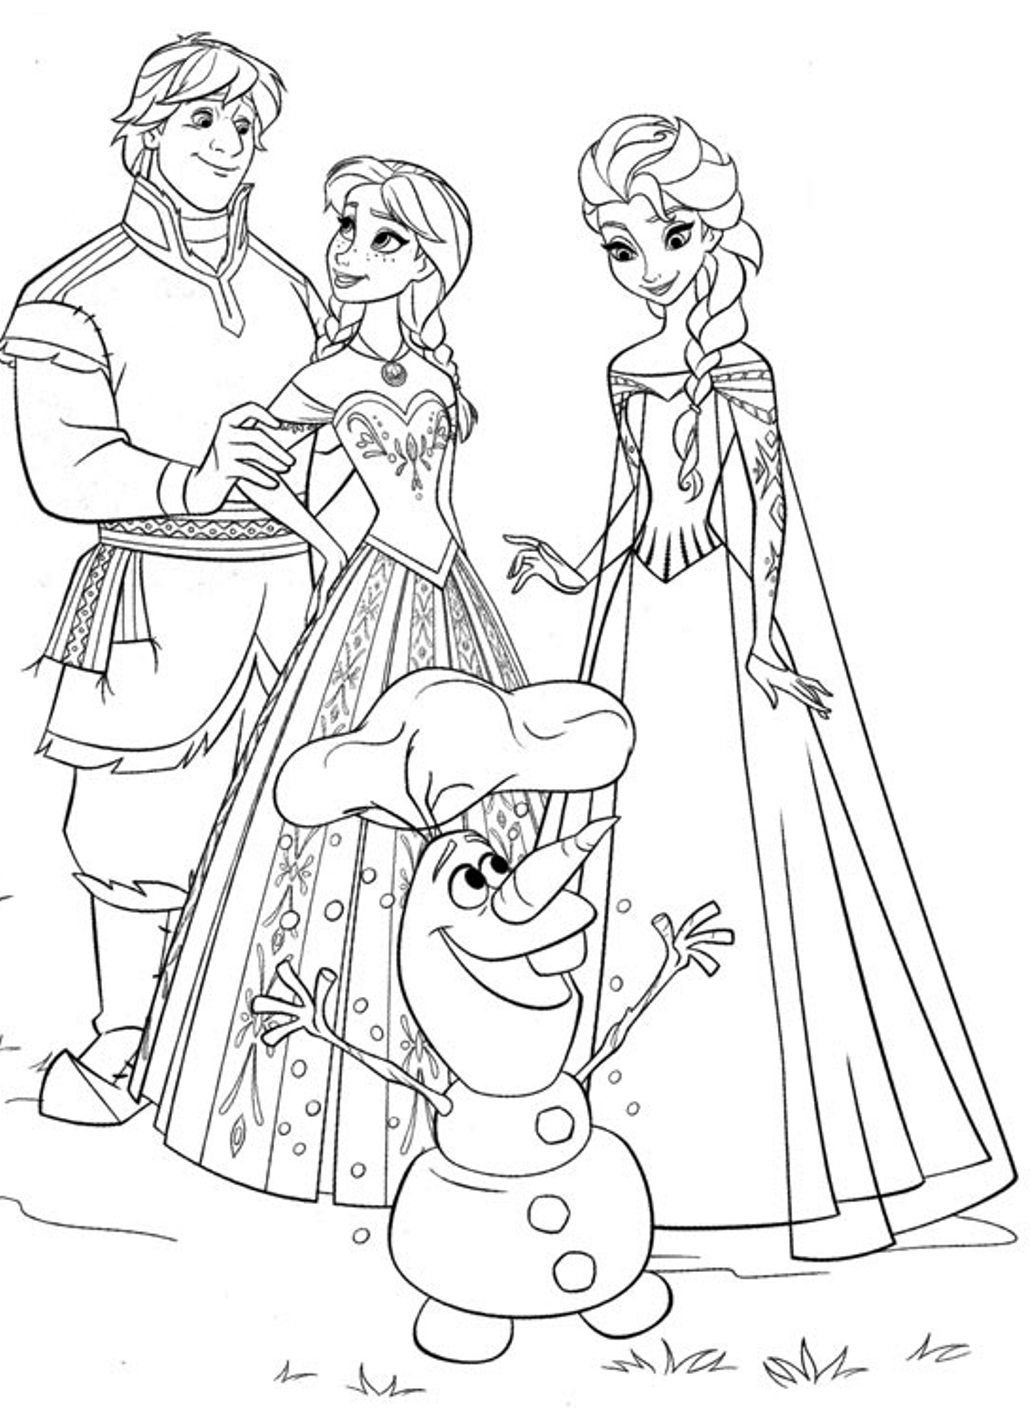 Printable coloring pages frozen free - 35 Free Disney S Frozen Coloring Pages Printable 1000 Free Printable Coloring Pages For Kids Coloring Books